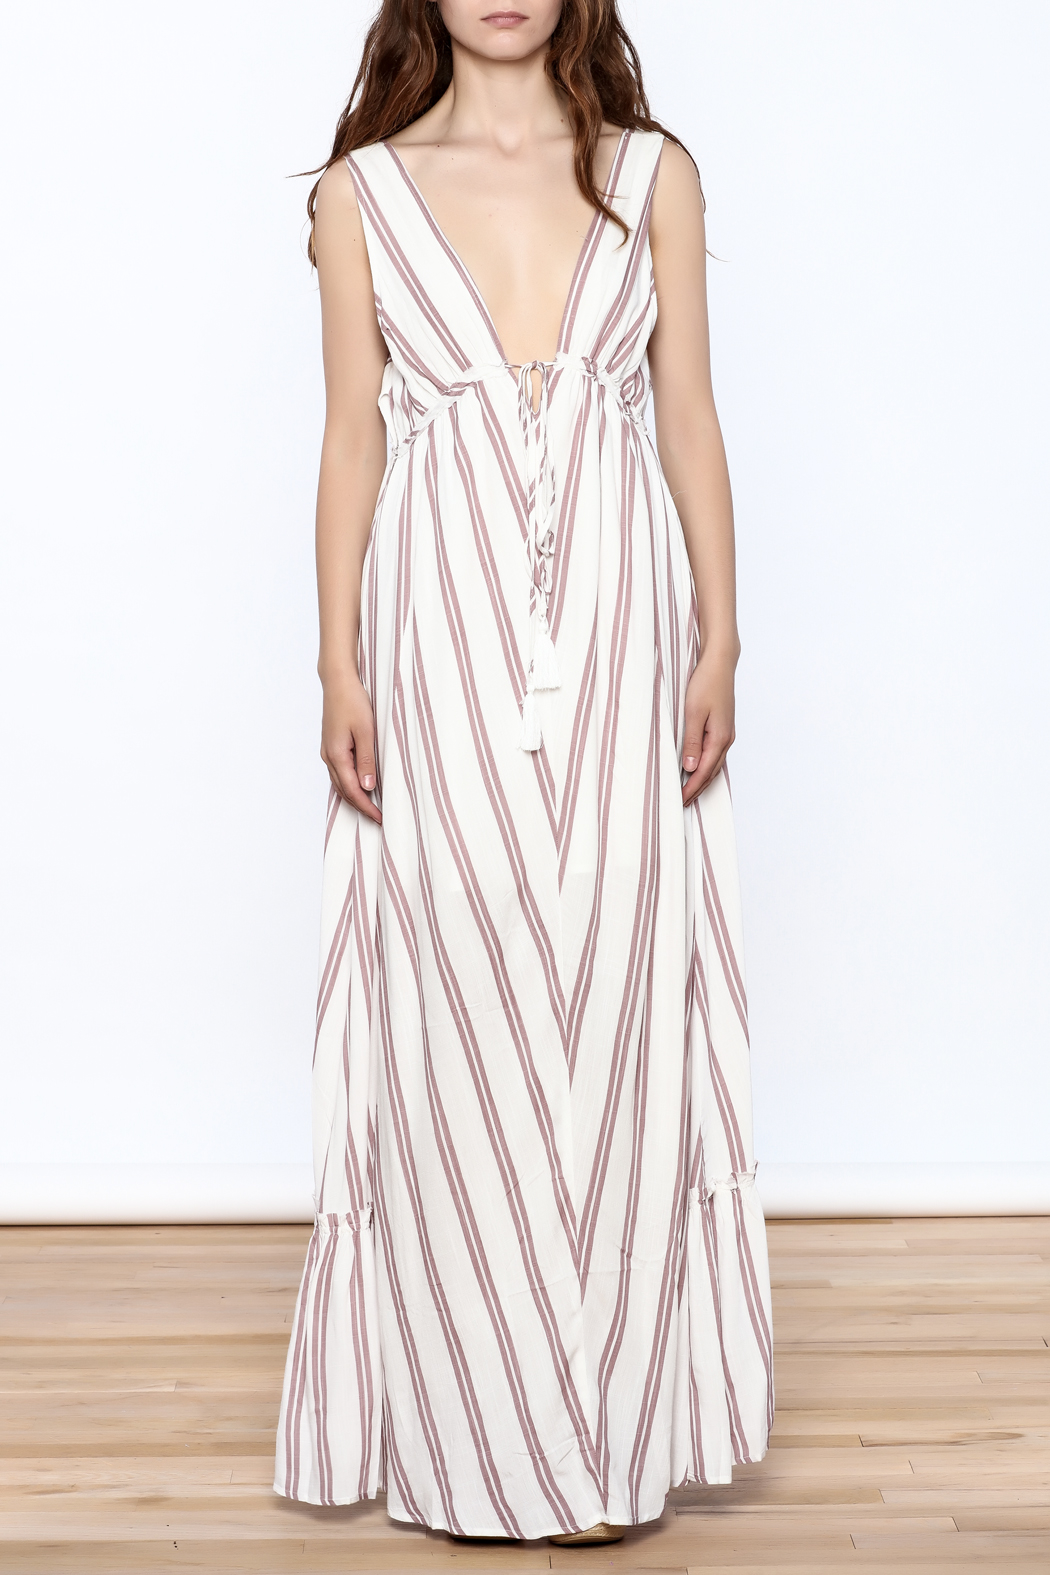 Hommage Flowy Roxy Maxi Dress - Front Cropped Image